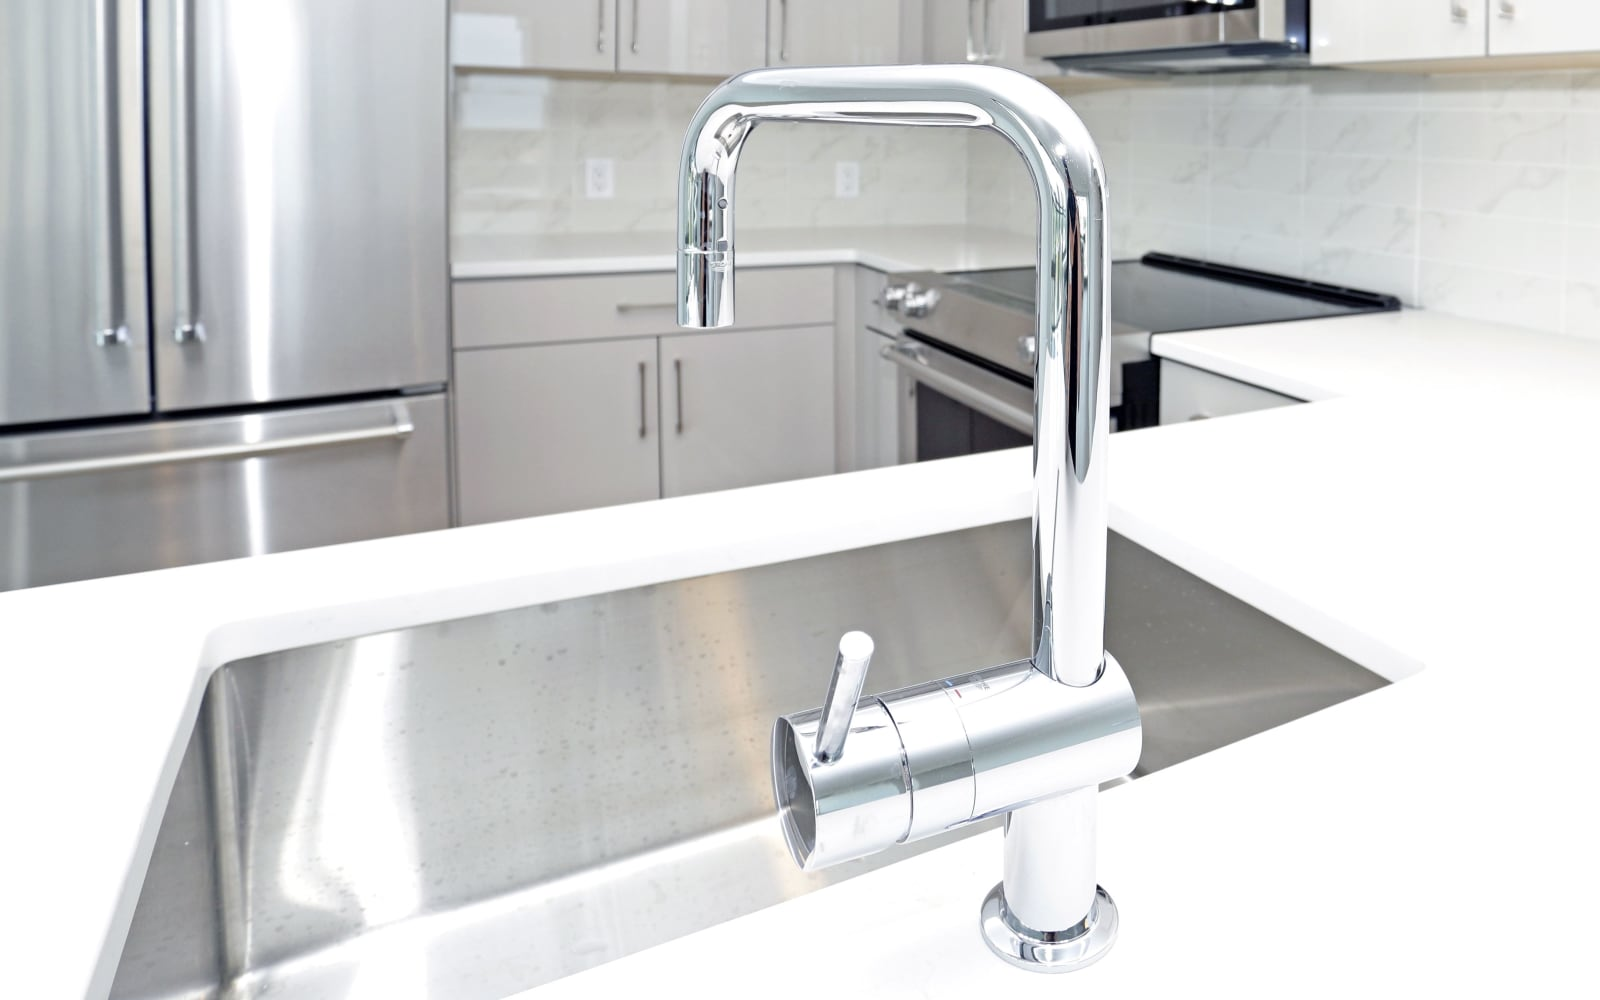 Shiny kitchen faucet inside of a The Centre home